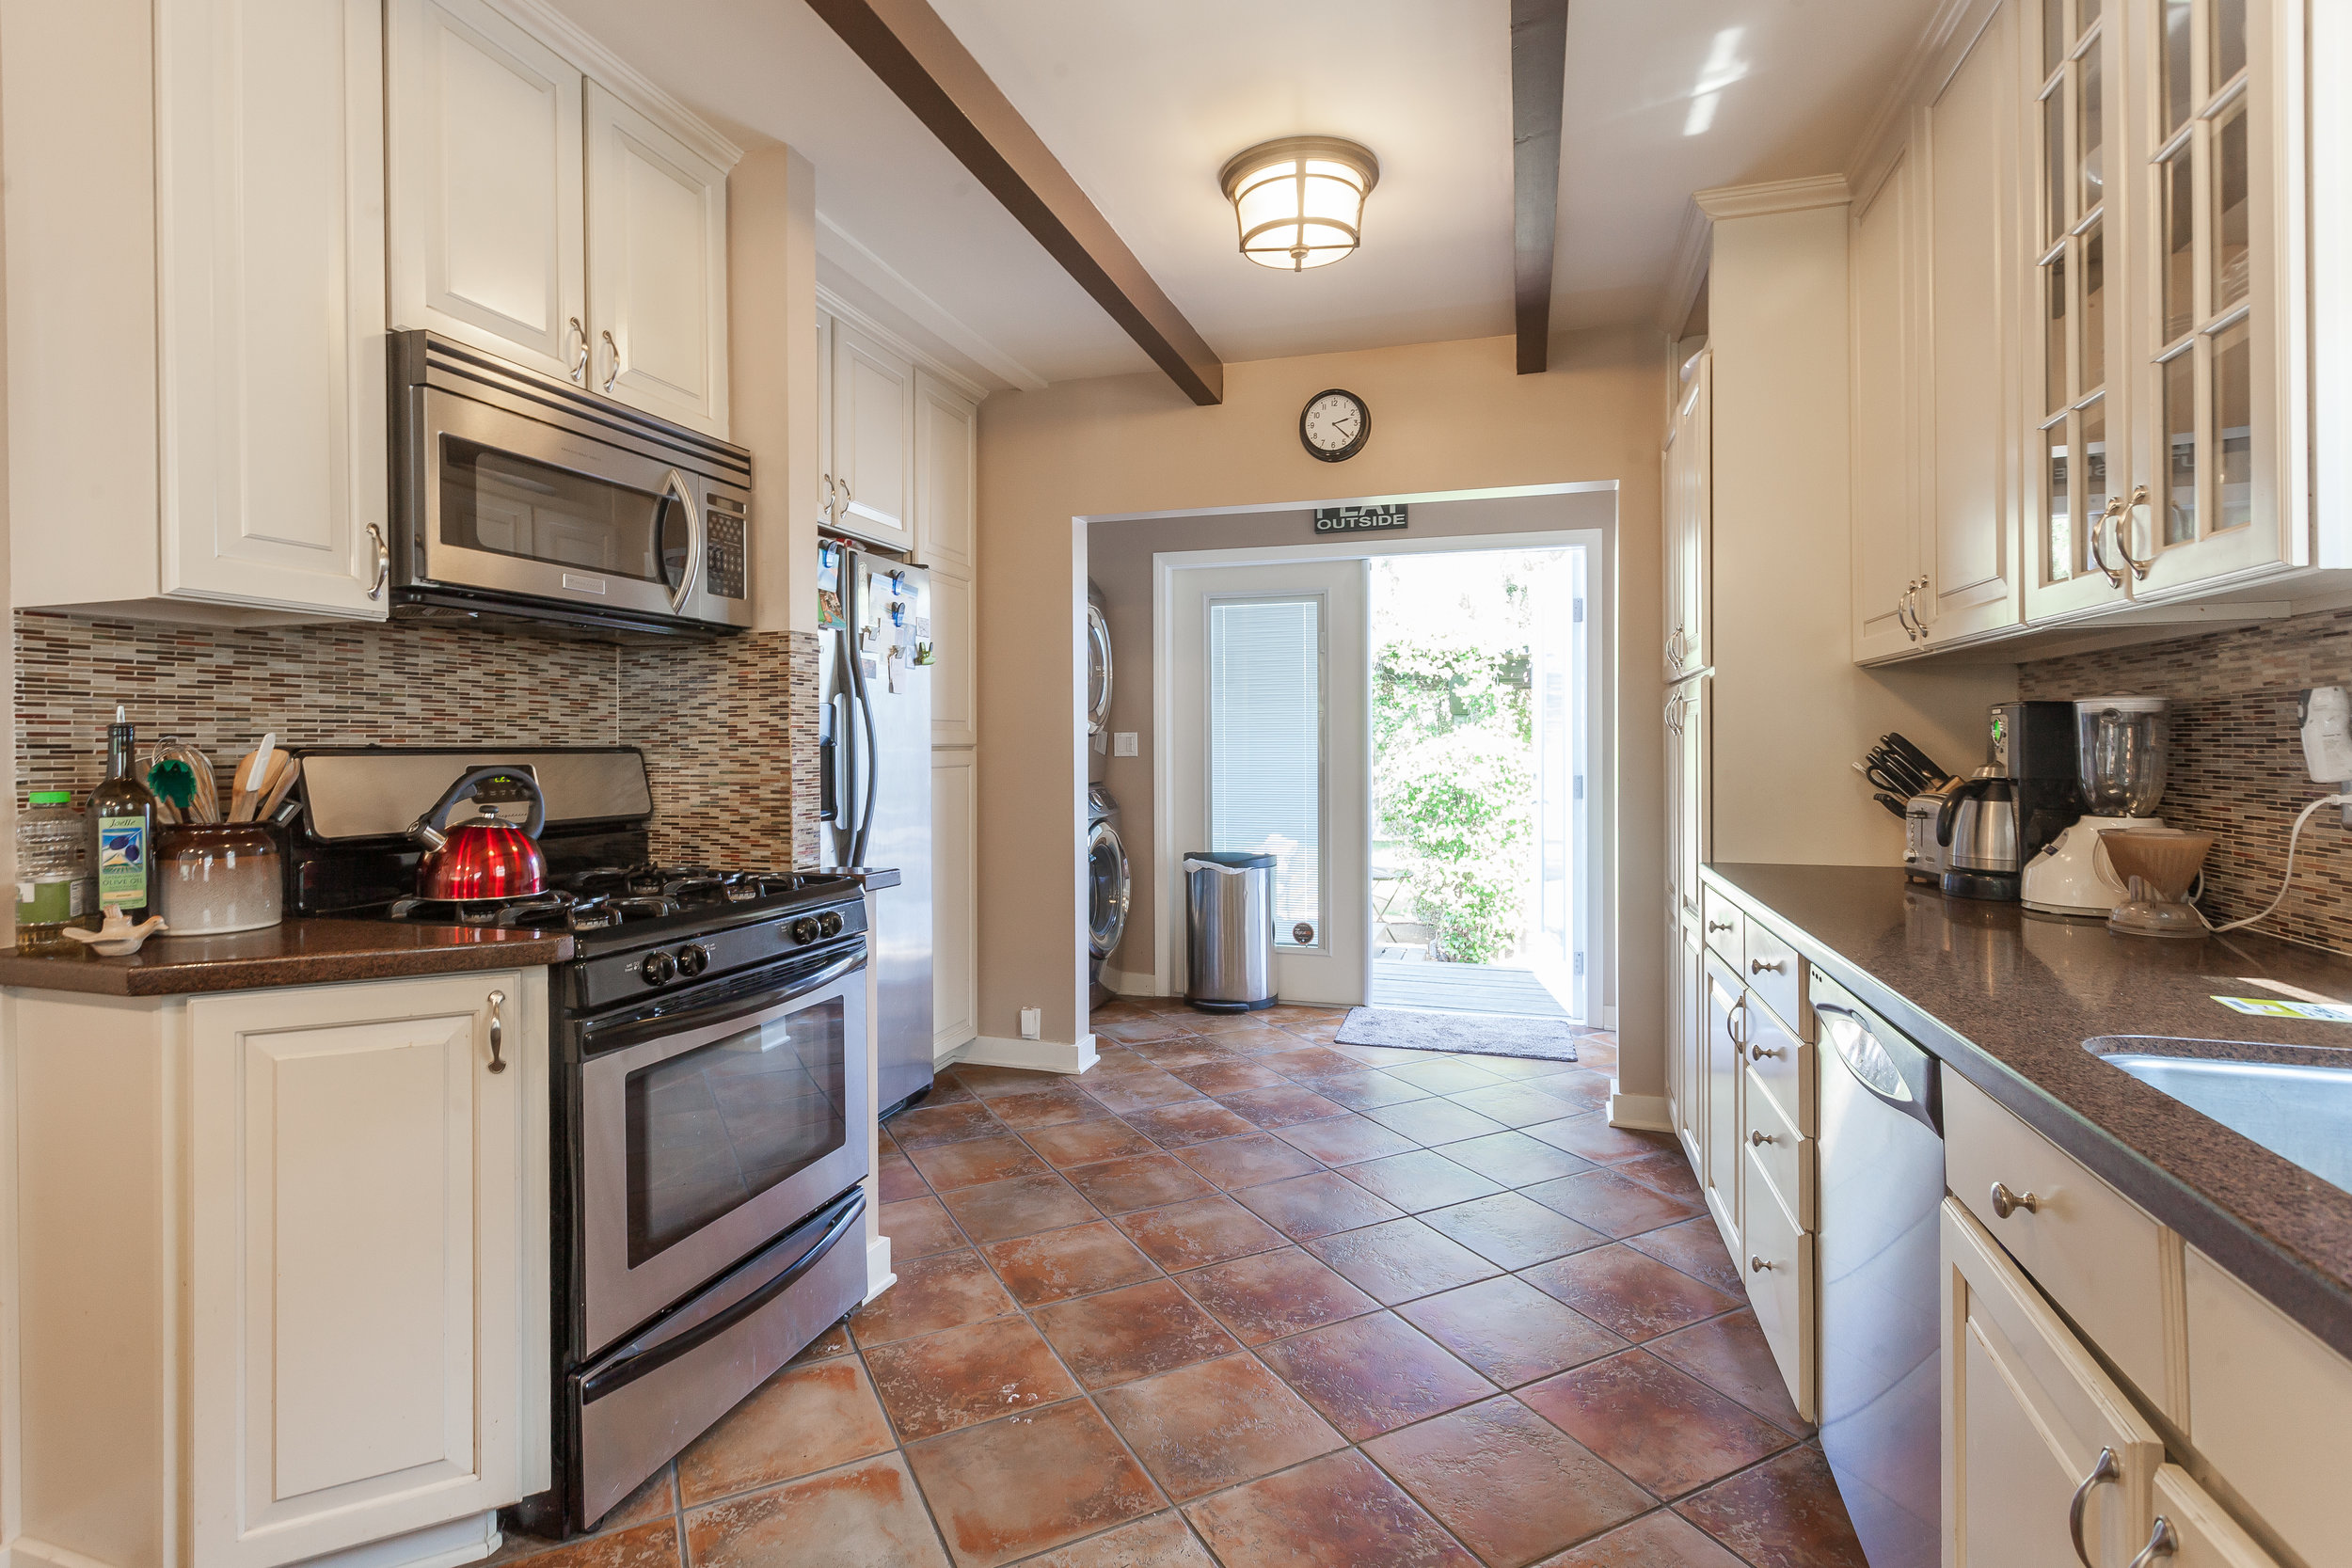 Image: Kitchen of our Culver City, LA, vacation home.